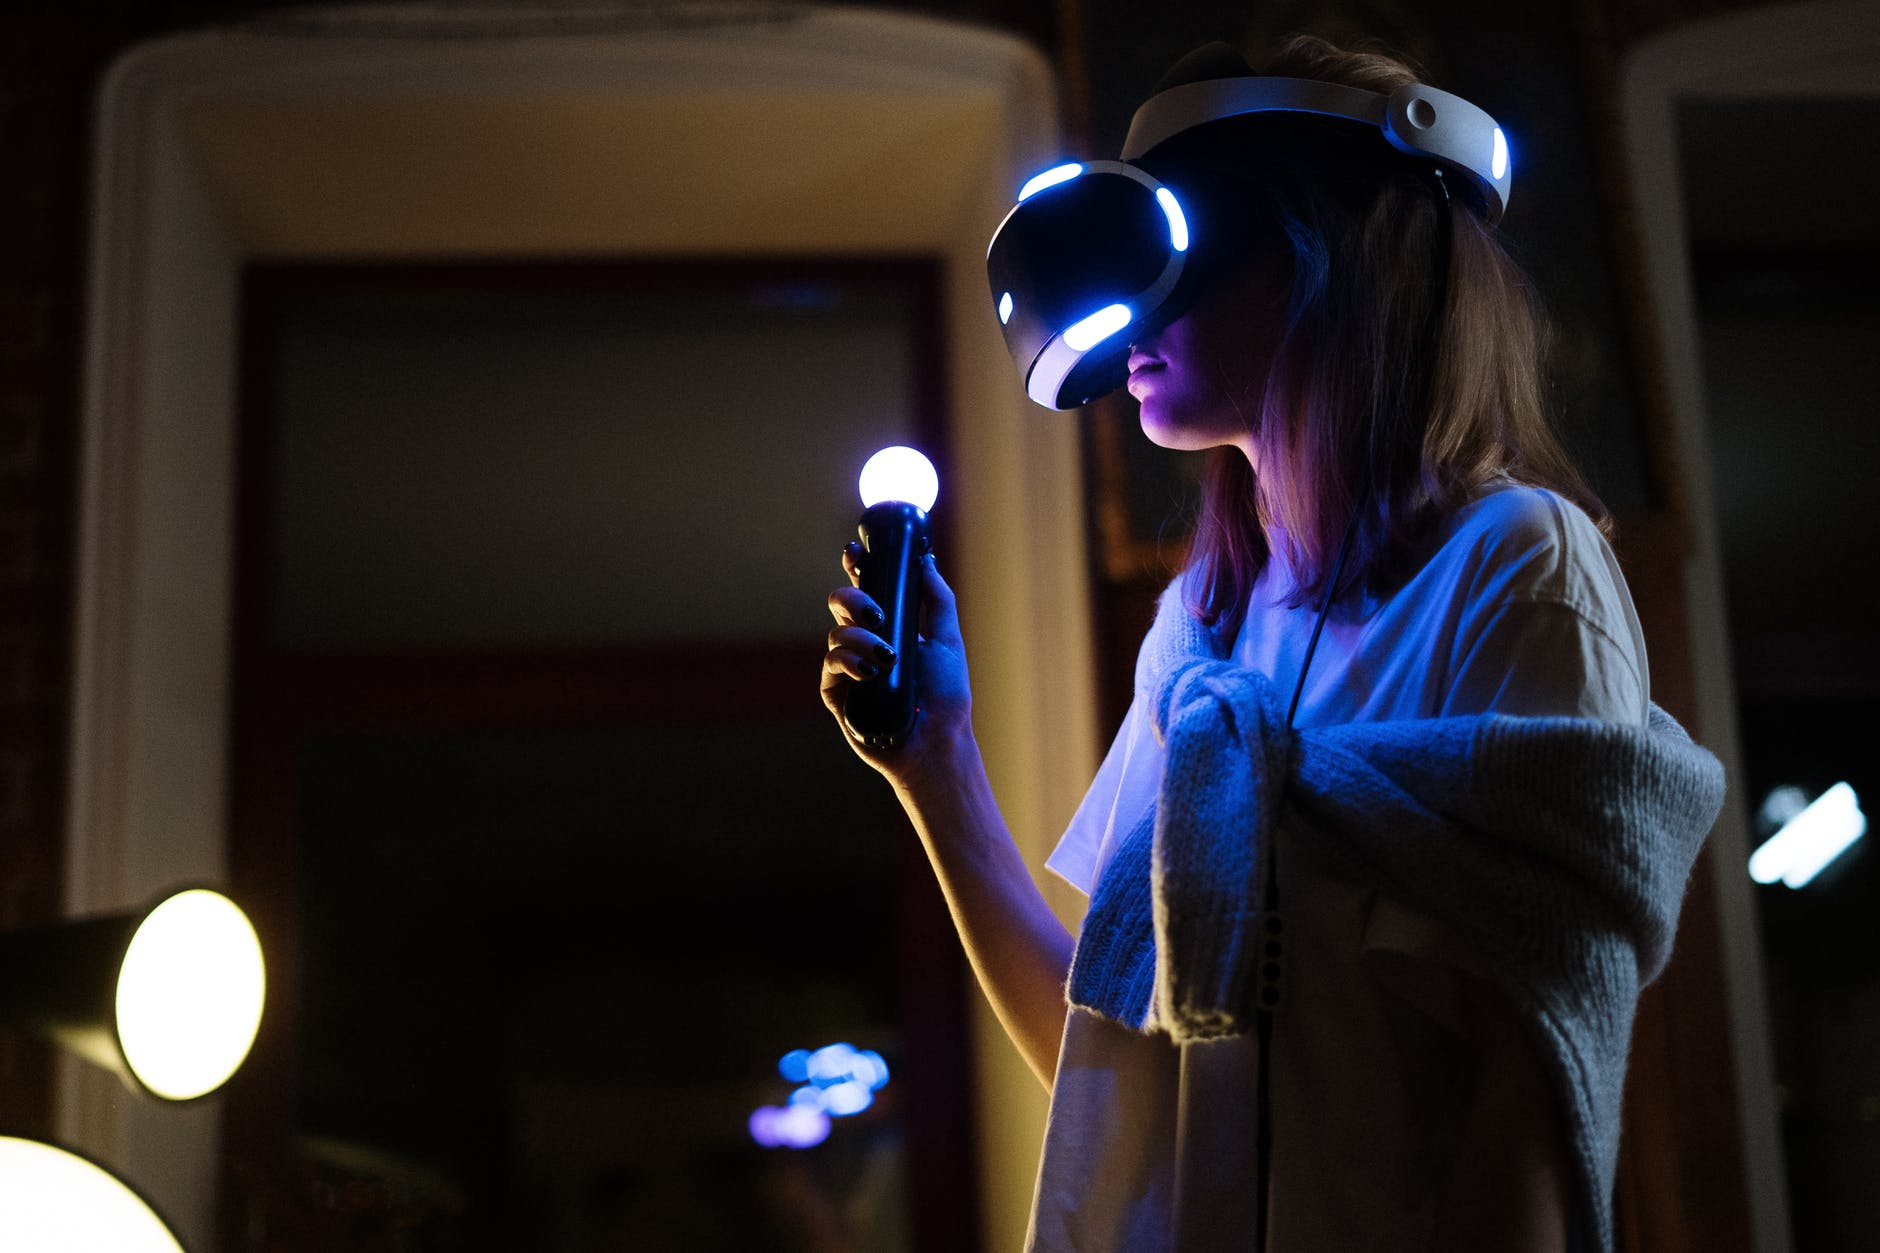 The Use of VR Therapy Clinics for Dealing With Mental Health Issues